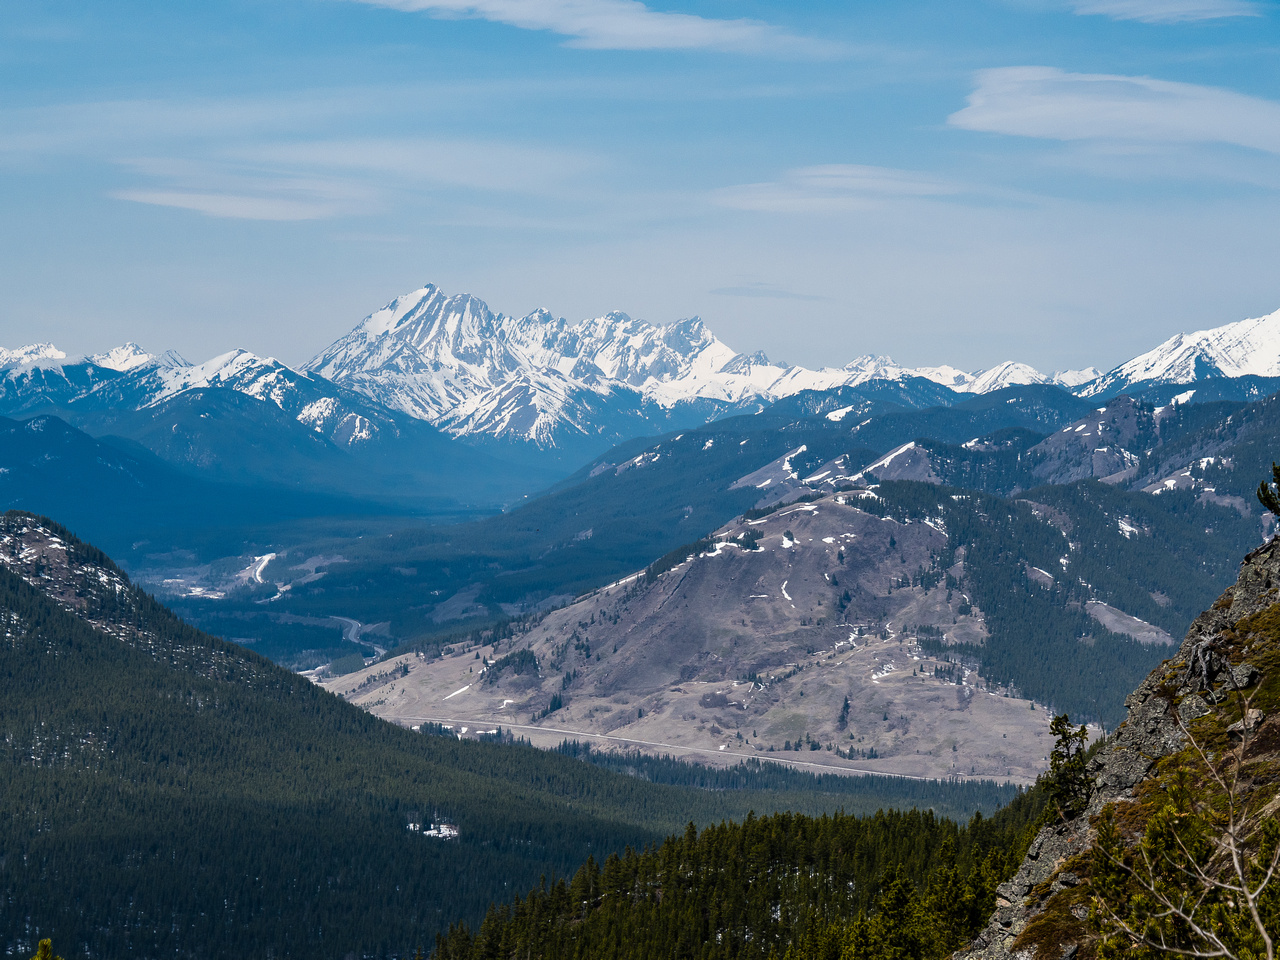 One more view towards the Highwood Pass area and Mist Mountain over Junction Hill.